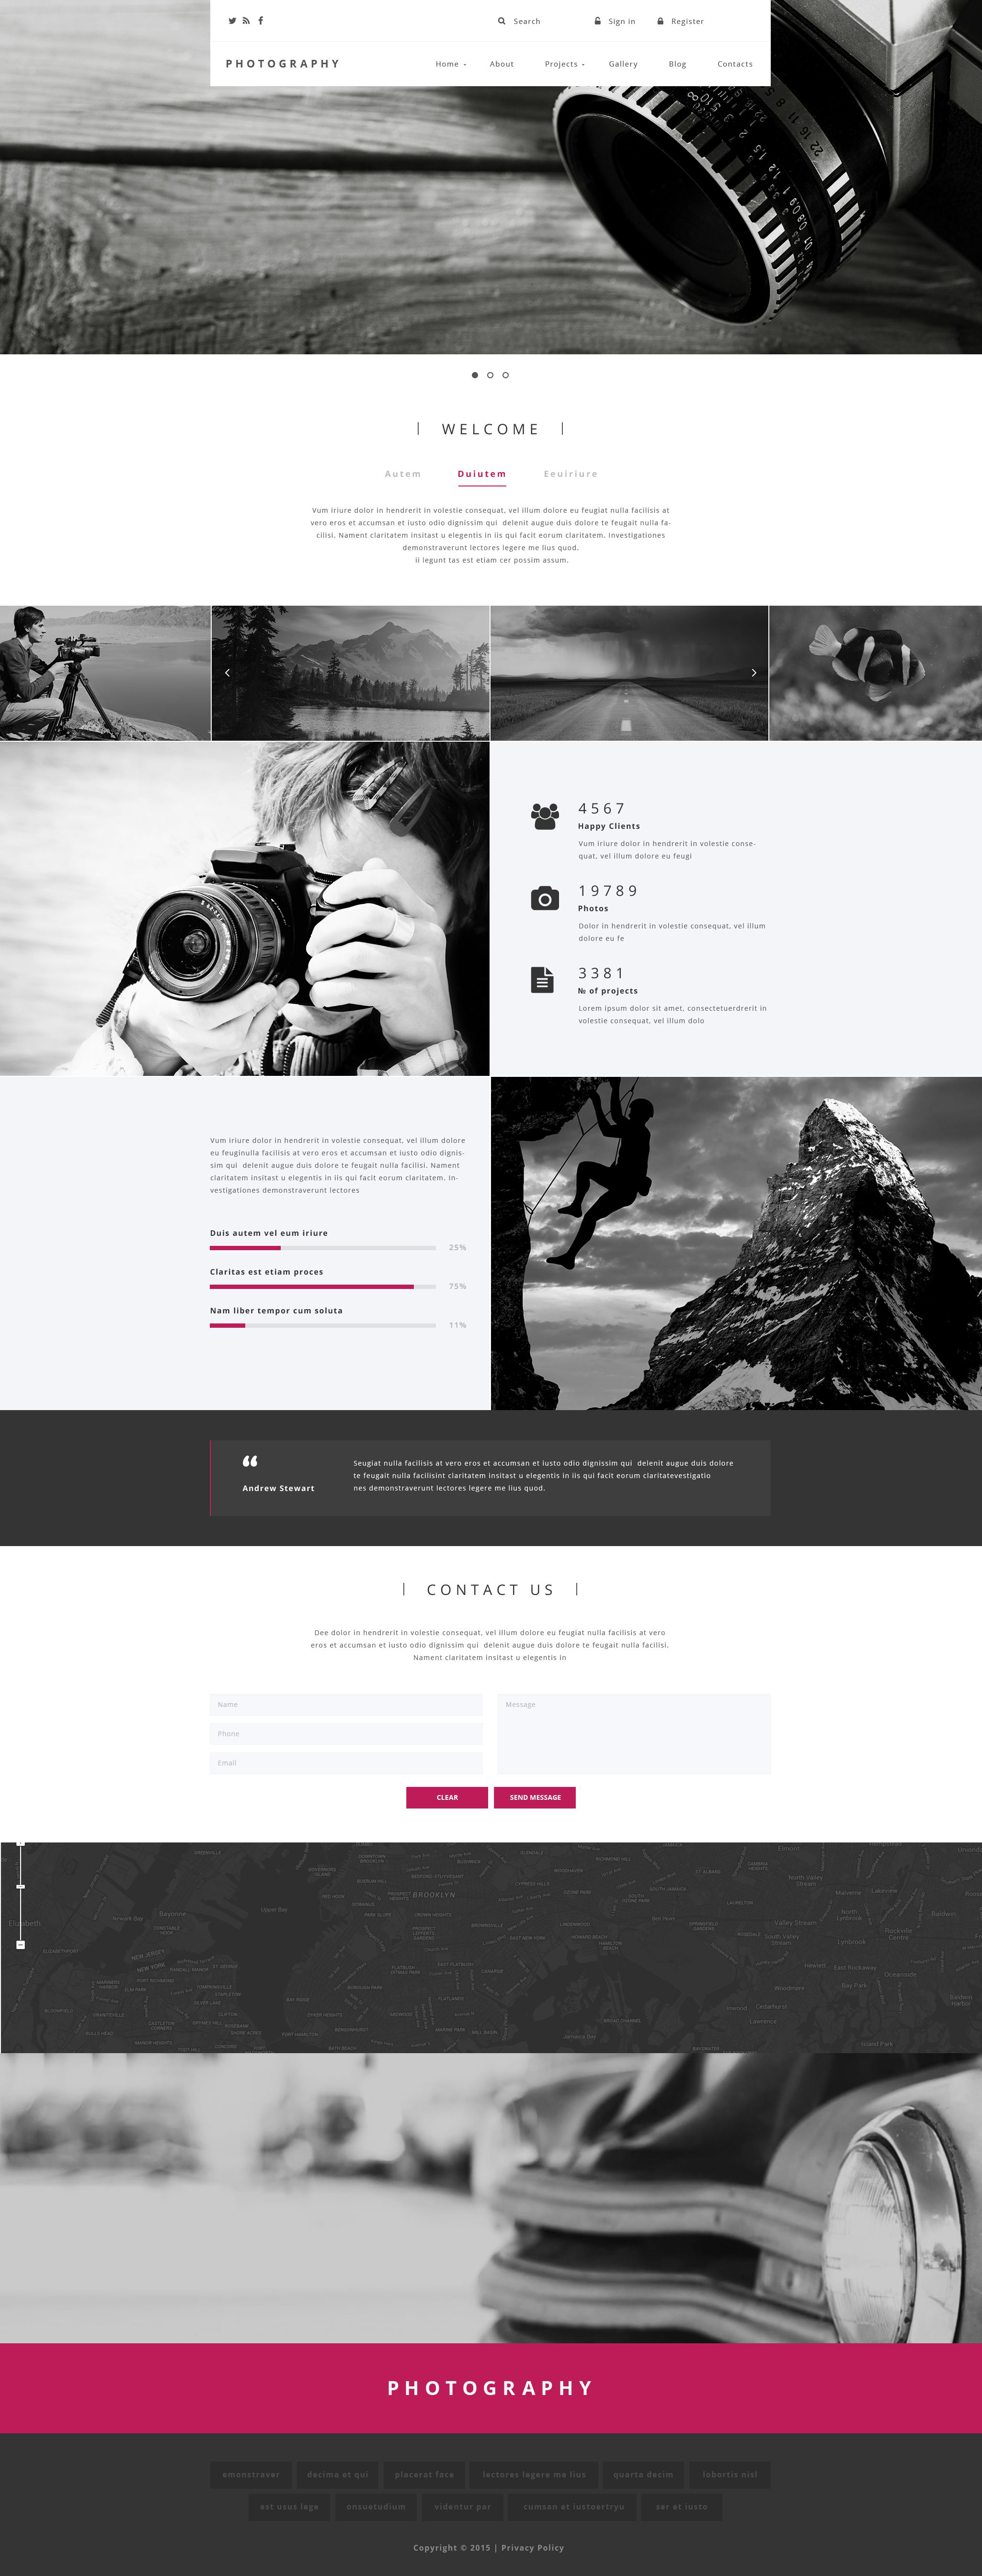 Photography Drupal Template